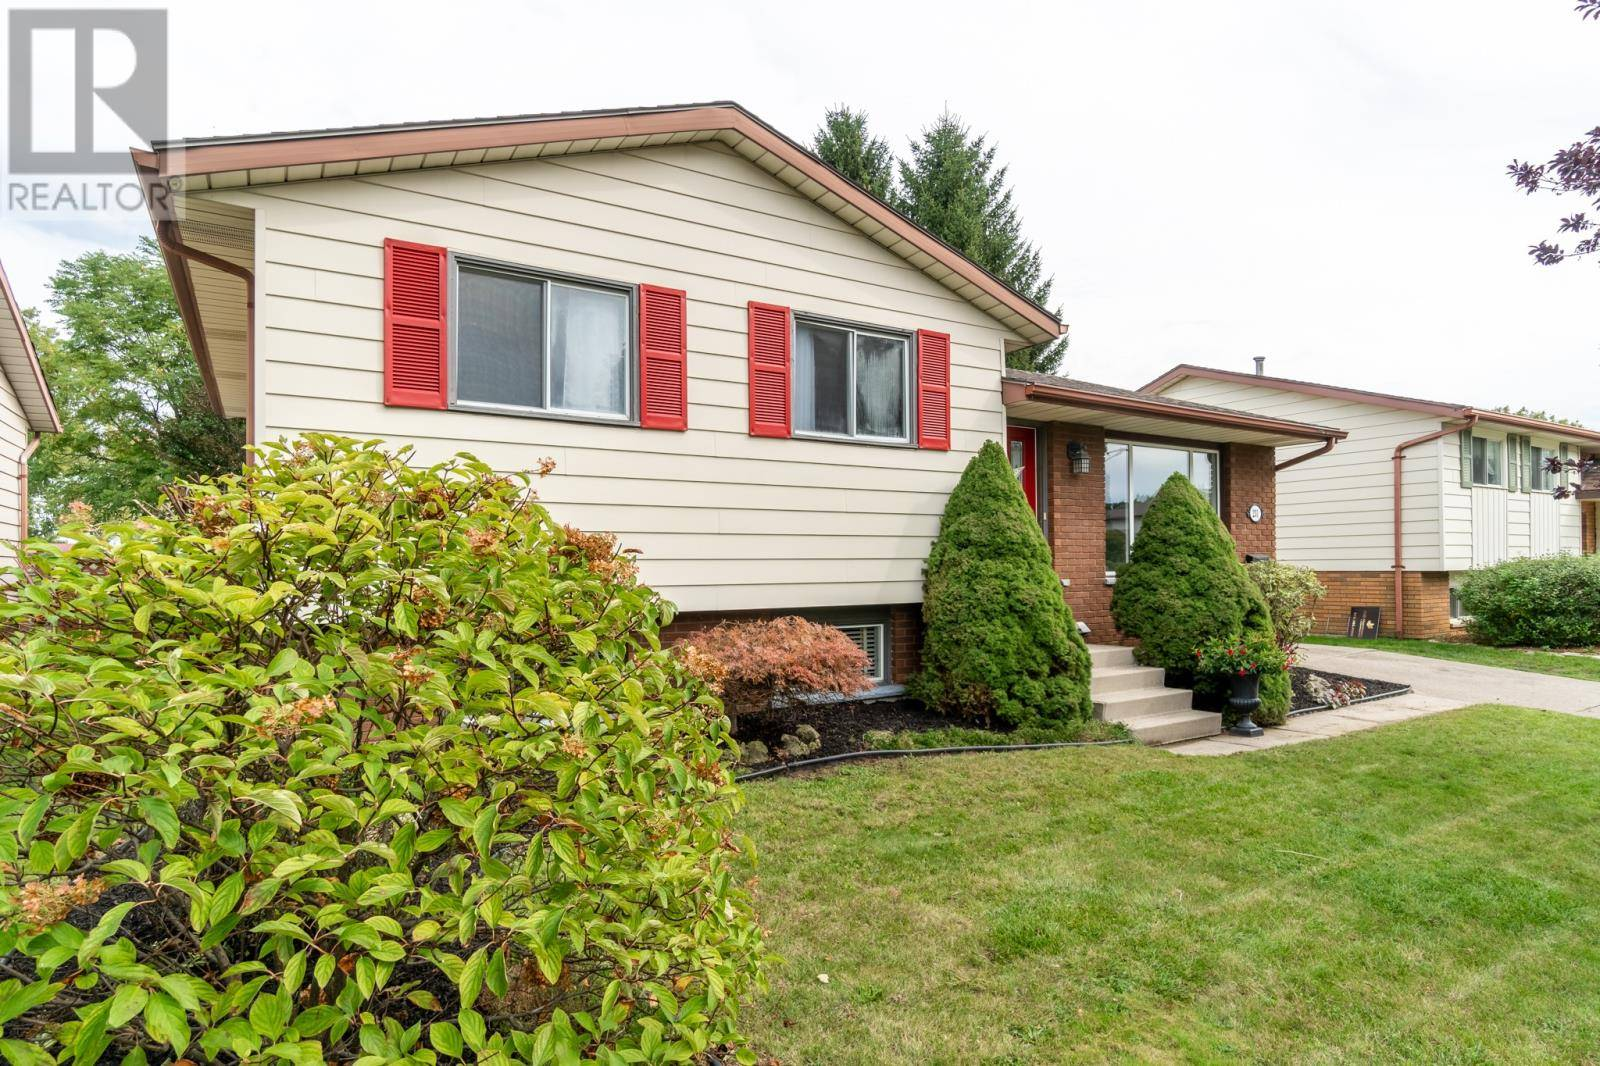 House for sale at 231 Michener Rd Chatham Ontario - MLS: 19025597